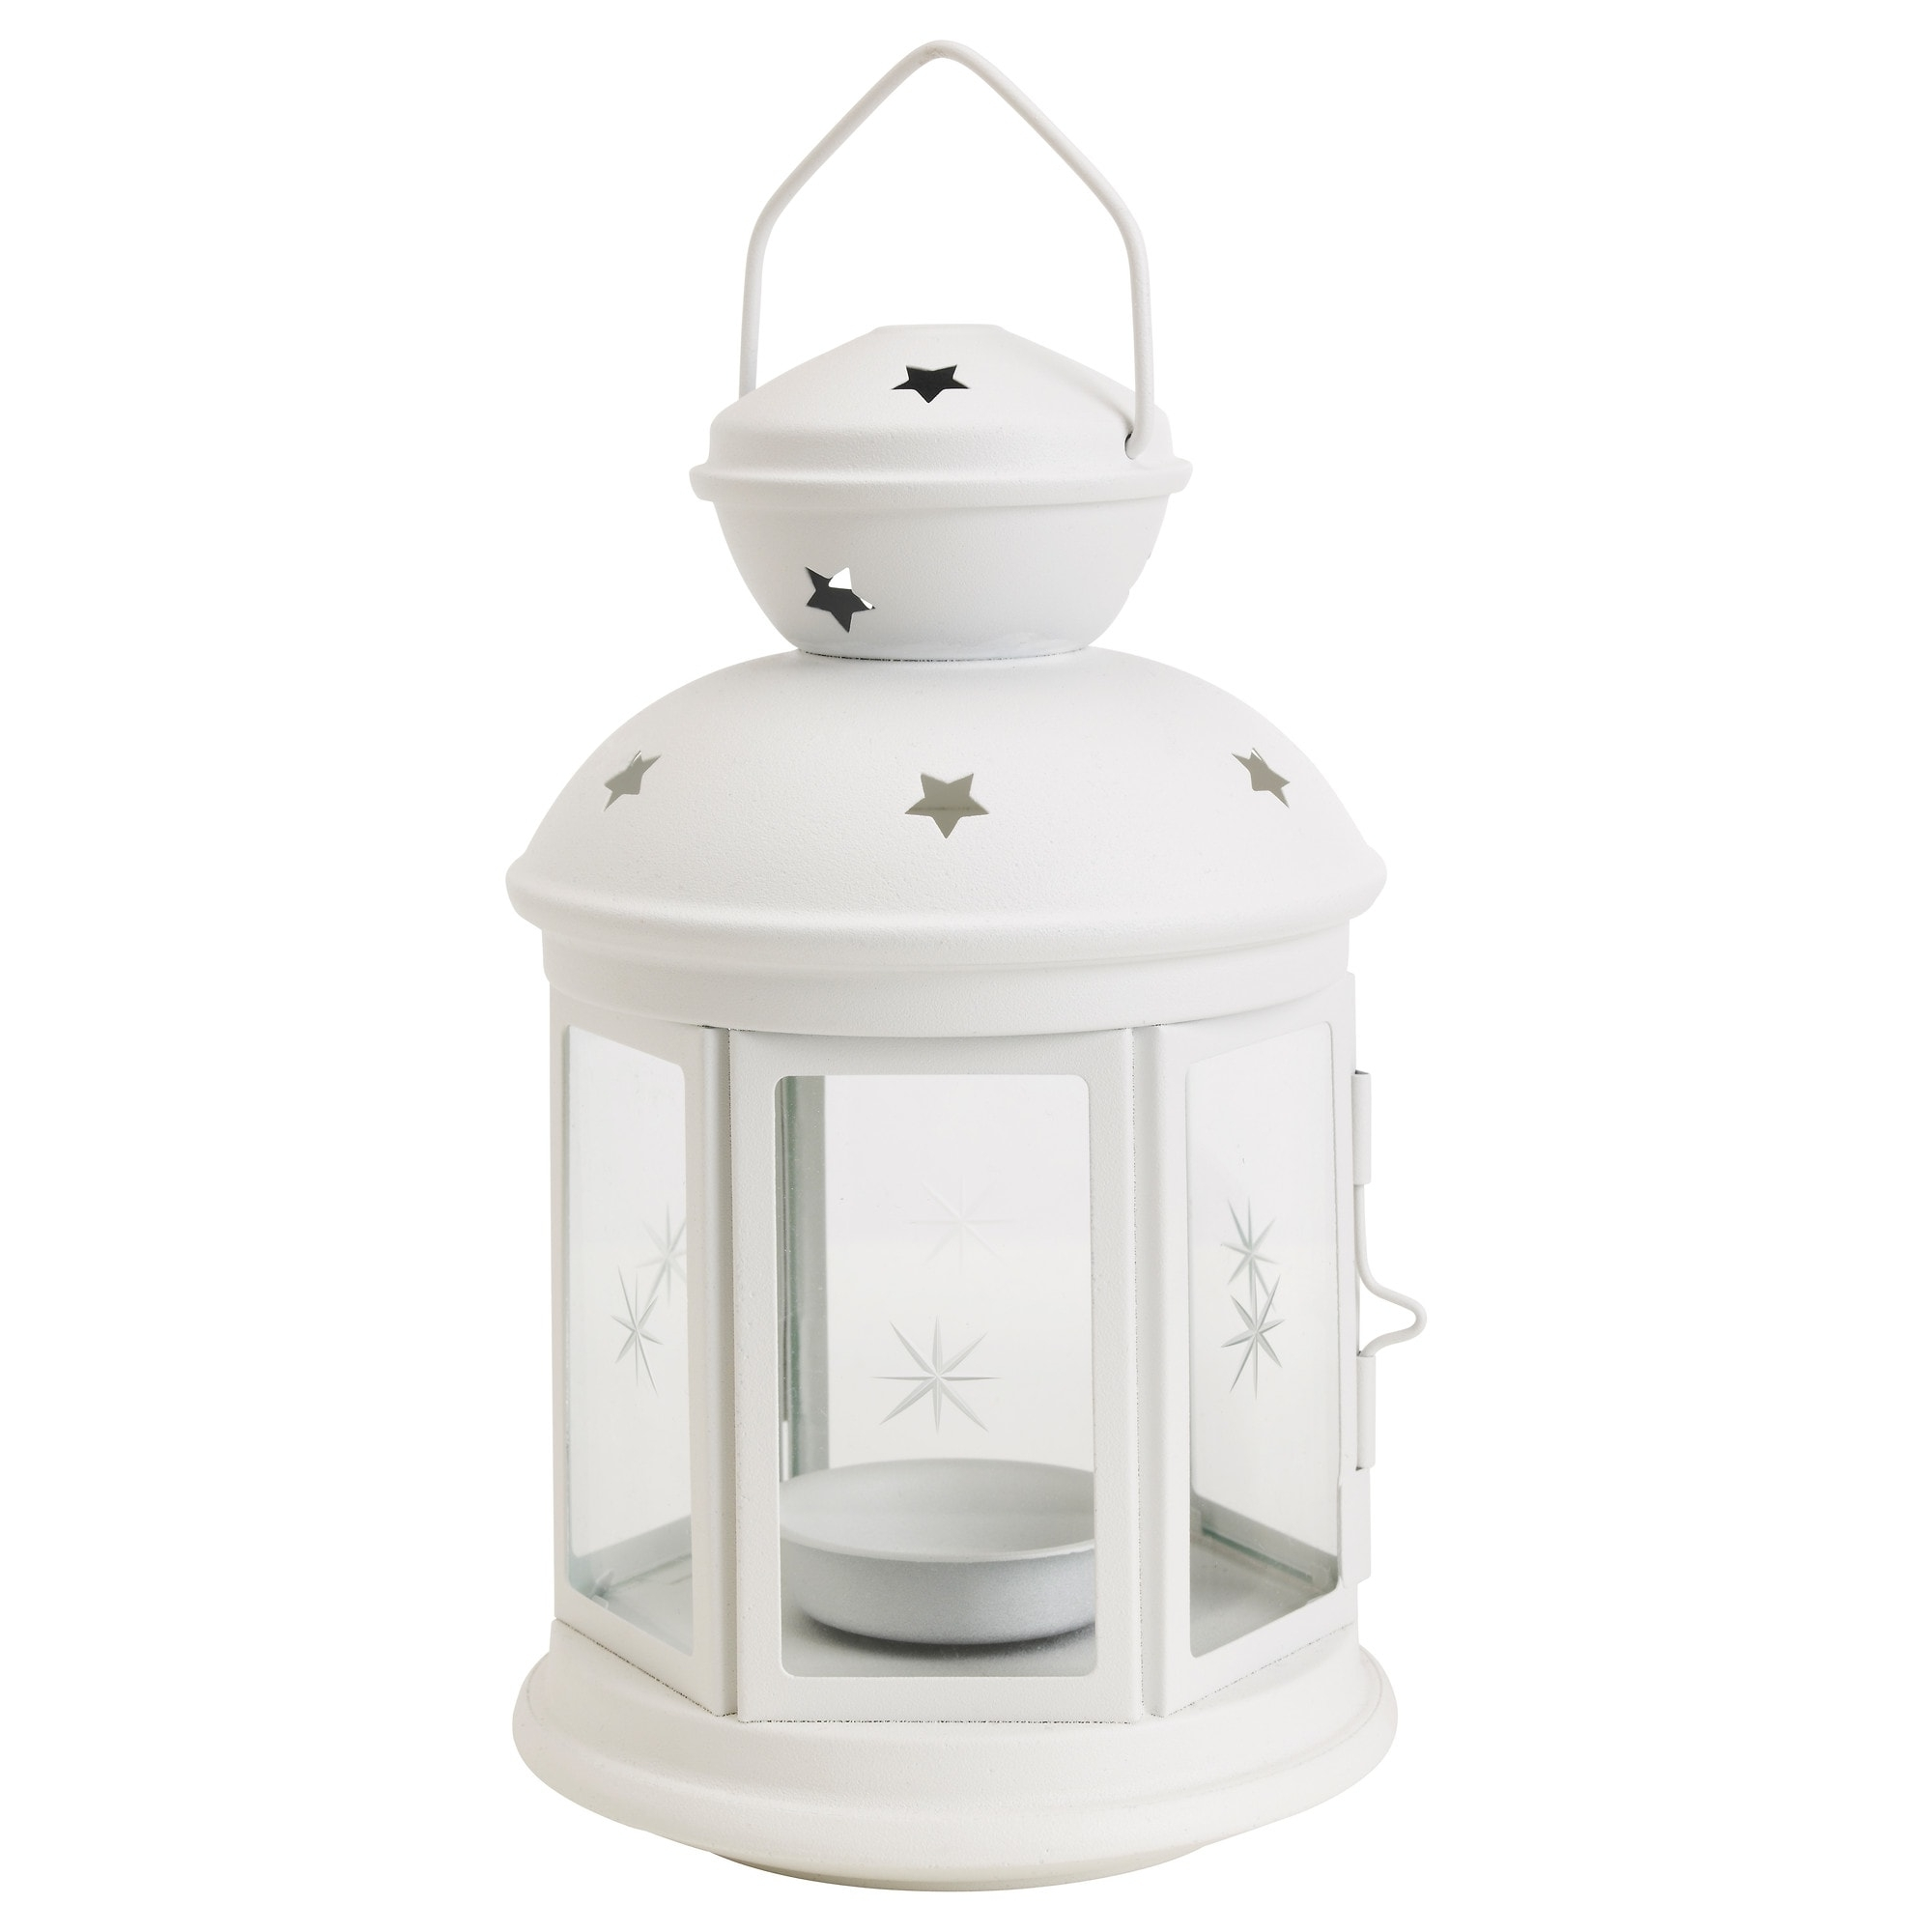 Outdoor Tea Light Lanterns Throughout Famous Rotera Lantern For Tealight – Ikea (View 16 of 20)